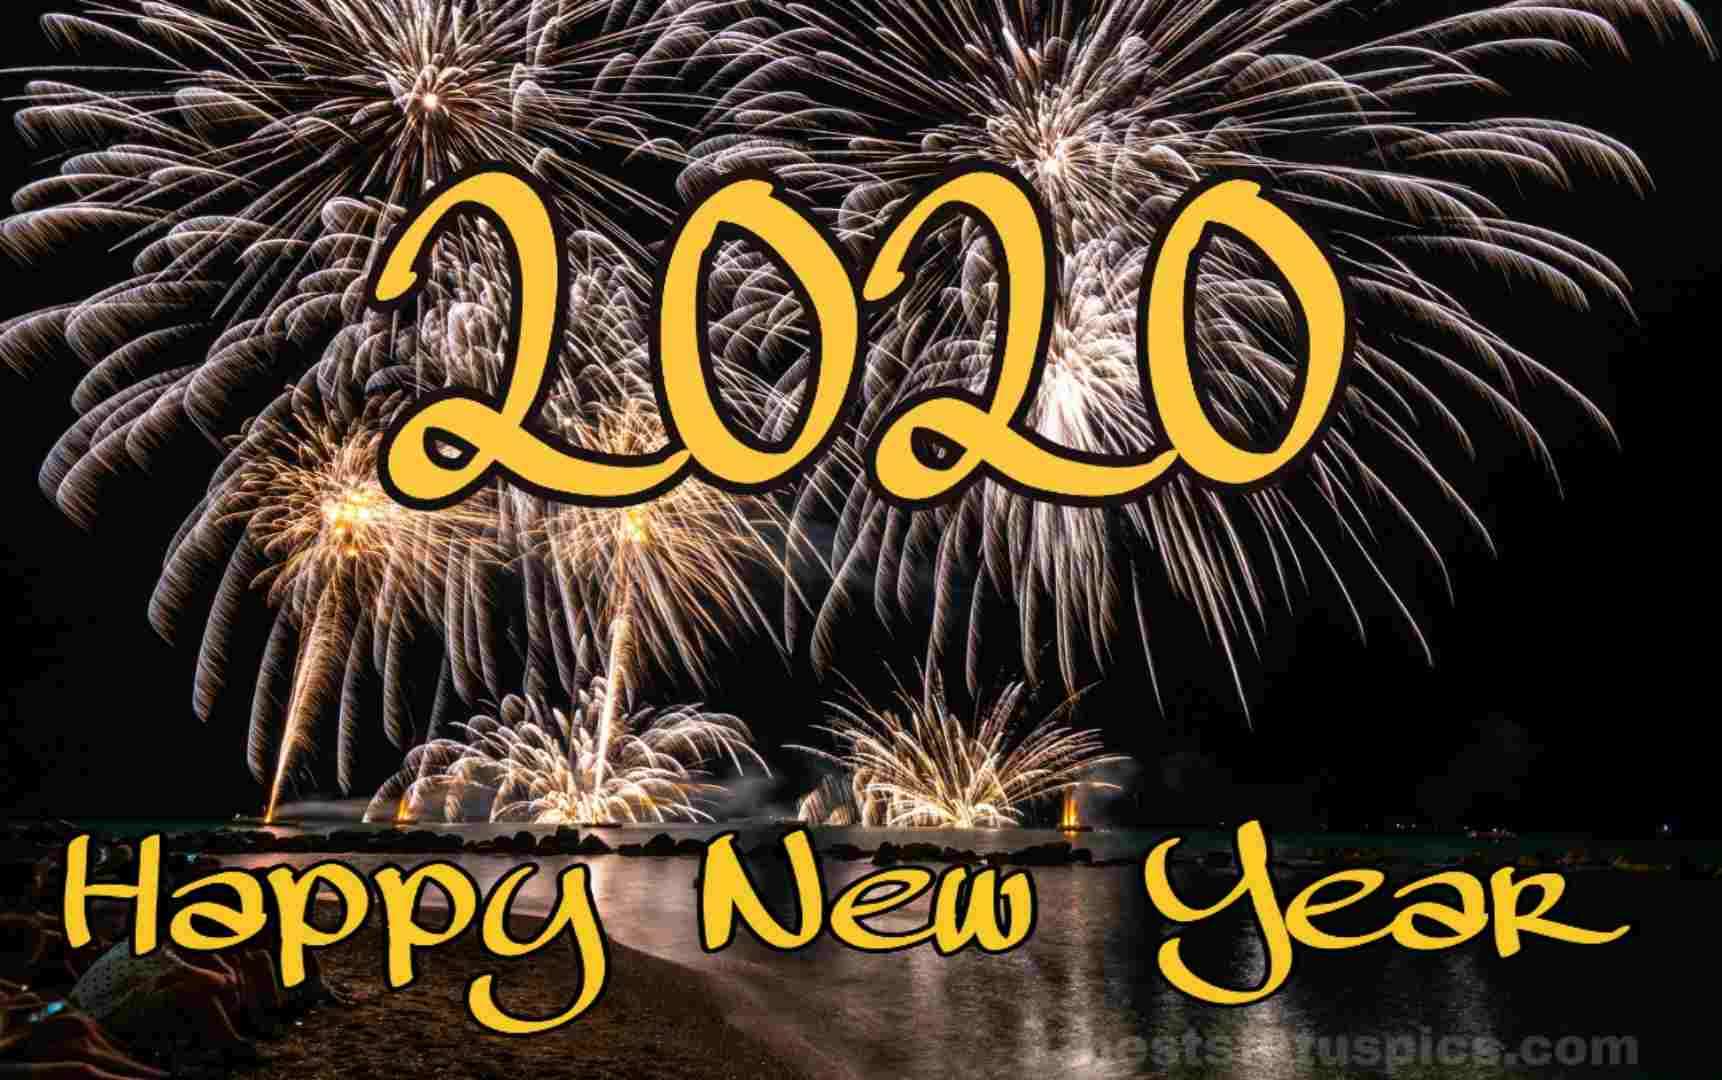 Download Happy New Year 2020 Image Facebook Status